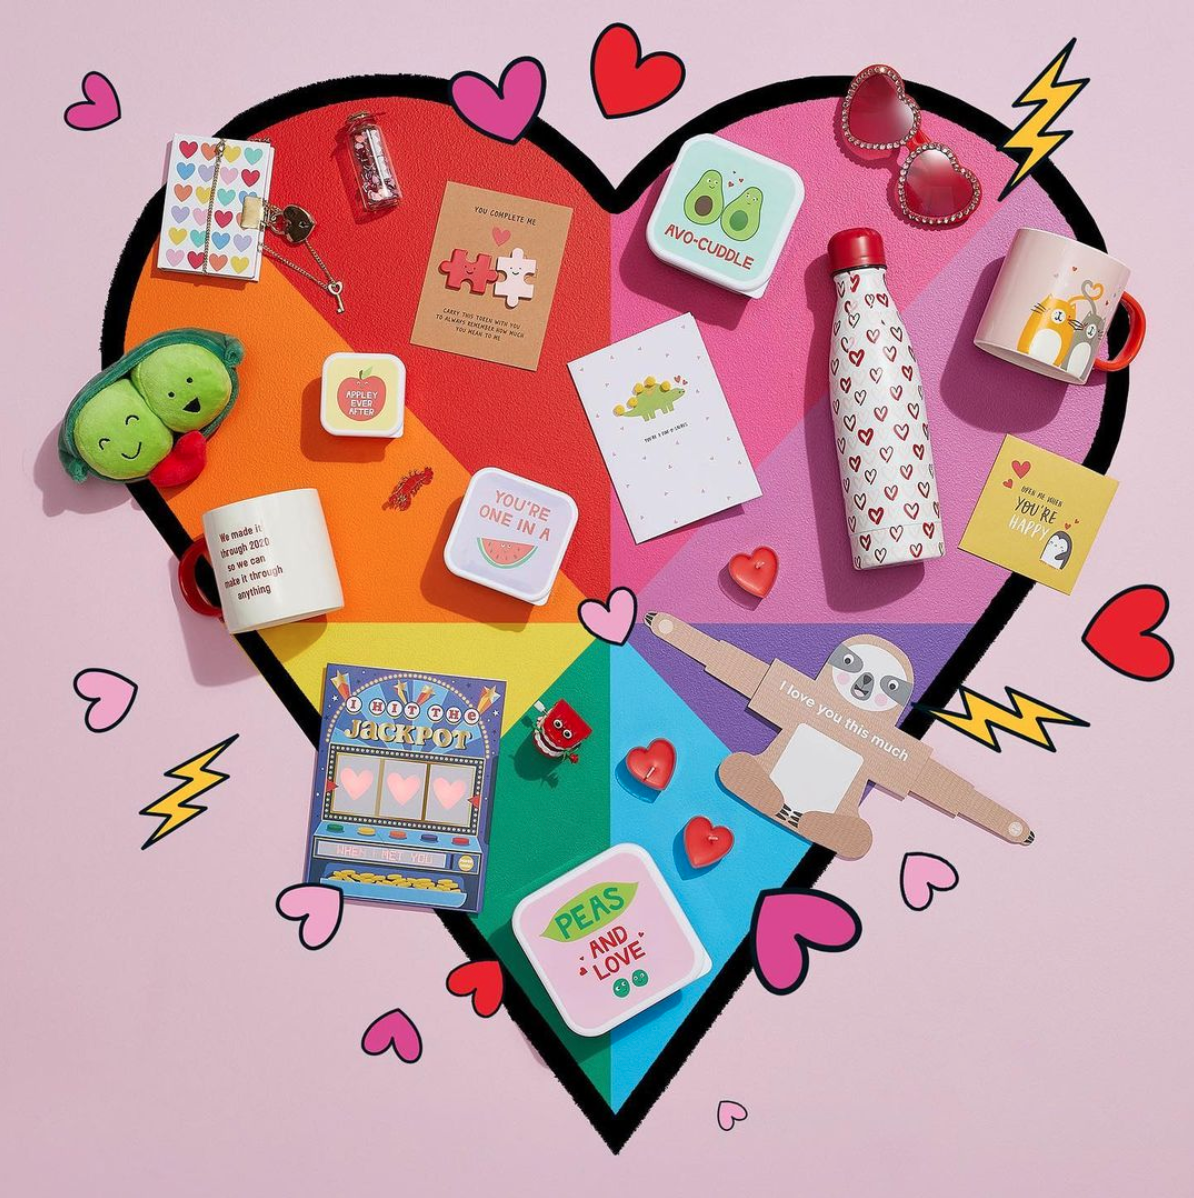 Above: An Instagram post to promote Paperchase's Valentine's range.